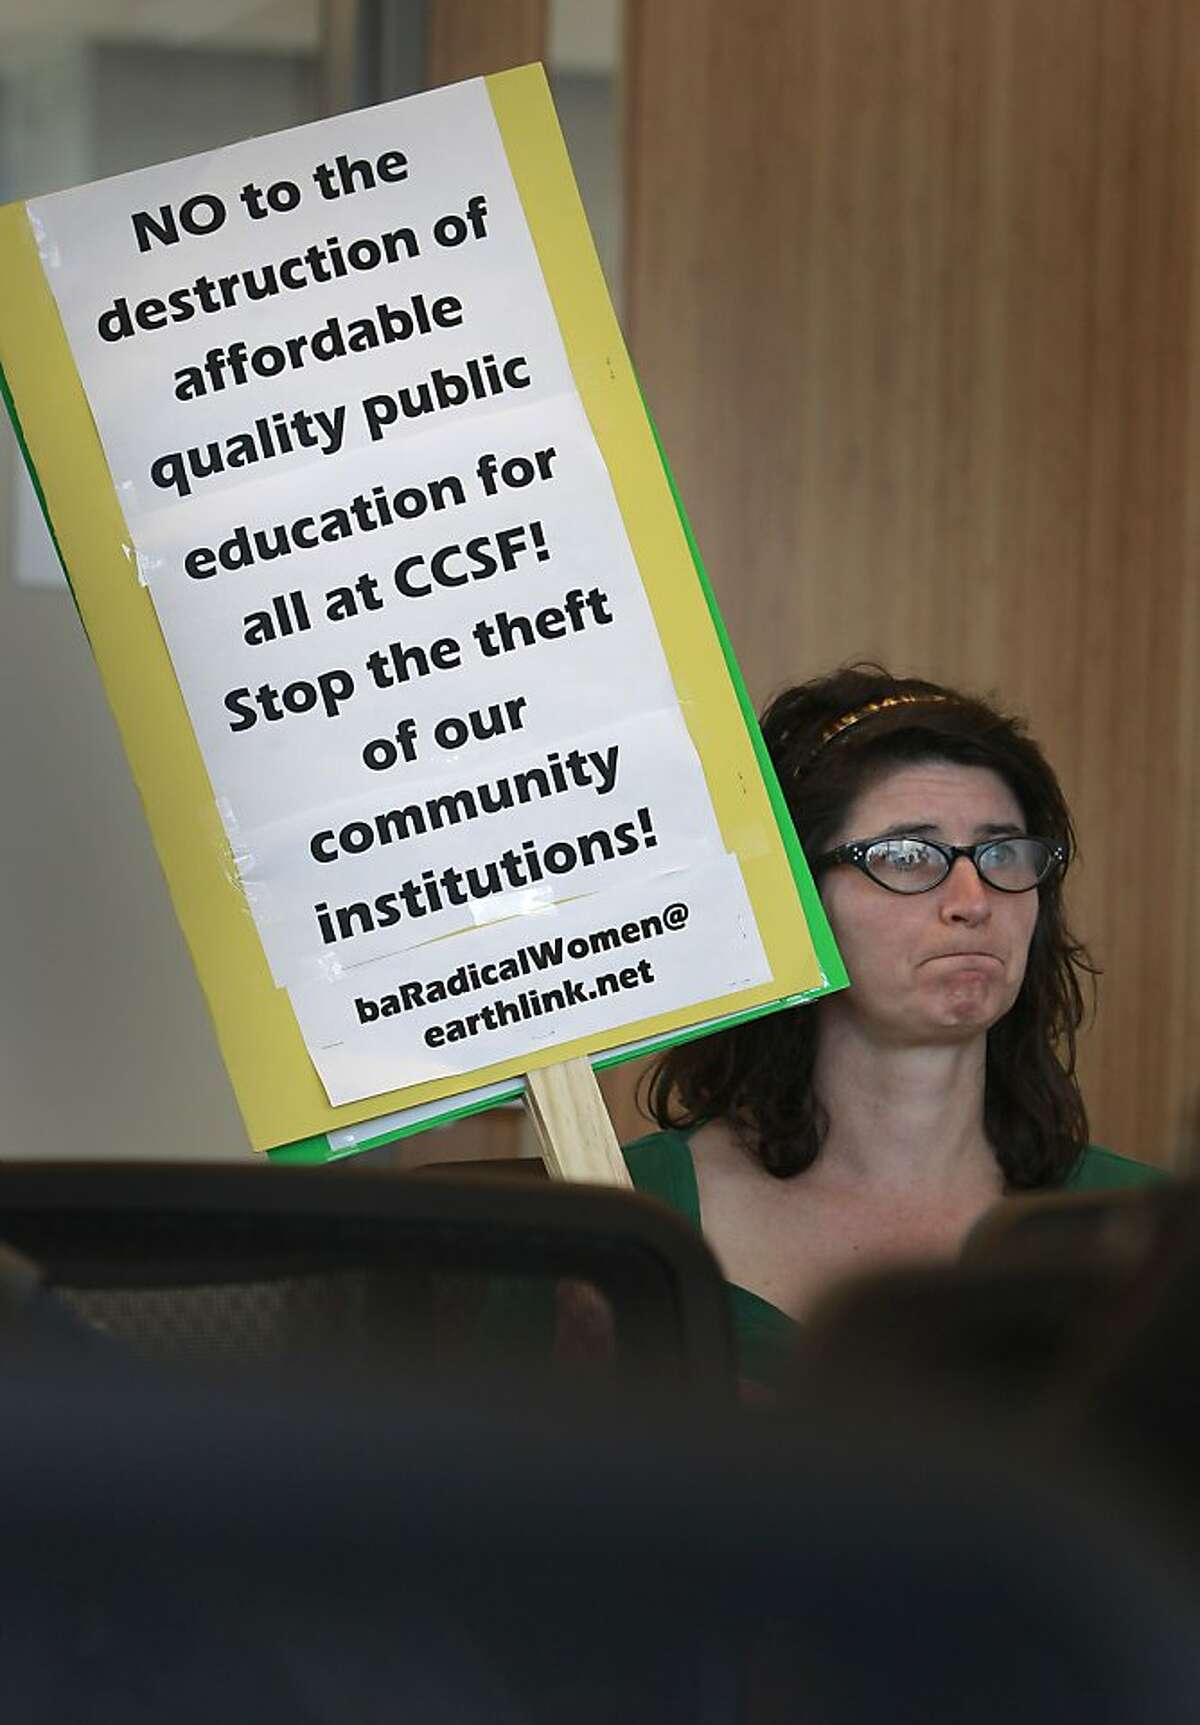 Community supporter and former CCSF student Toni Mendocino holds a sign as she listens to the panel made up of members of the Save CCSF Coalition ?' which represents faculty, students, staff, and community members. They are rejecting the legitimacy of the Accrediting Commissions' decision to terminate the school's accreditation as they hold a press briefing at the Chinatown/North Beach campus of CCSF in San Francisco, Calif., on Friday July 5, 2013.